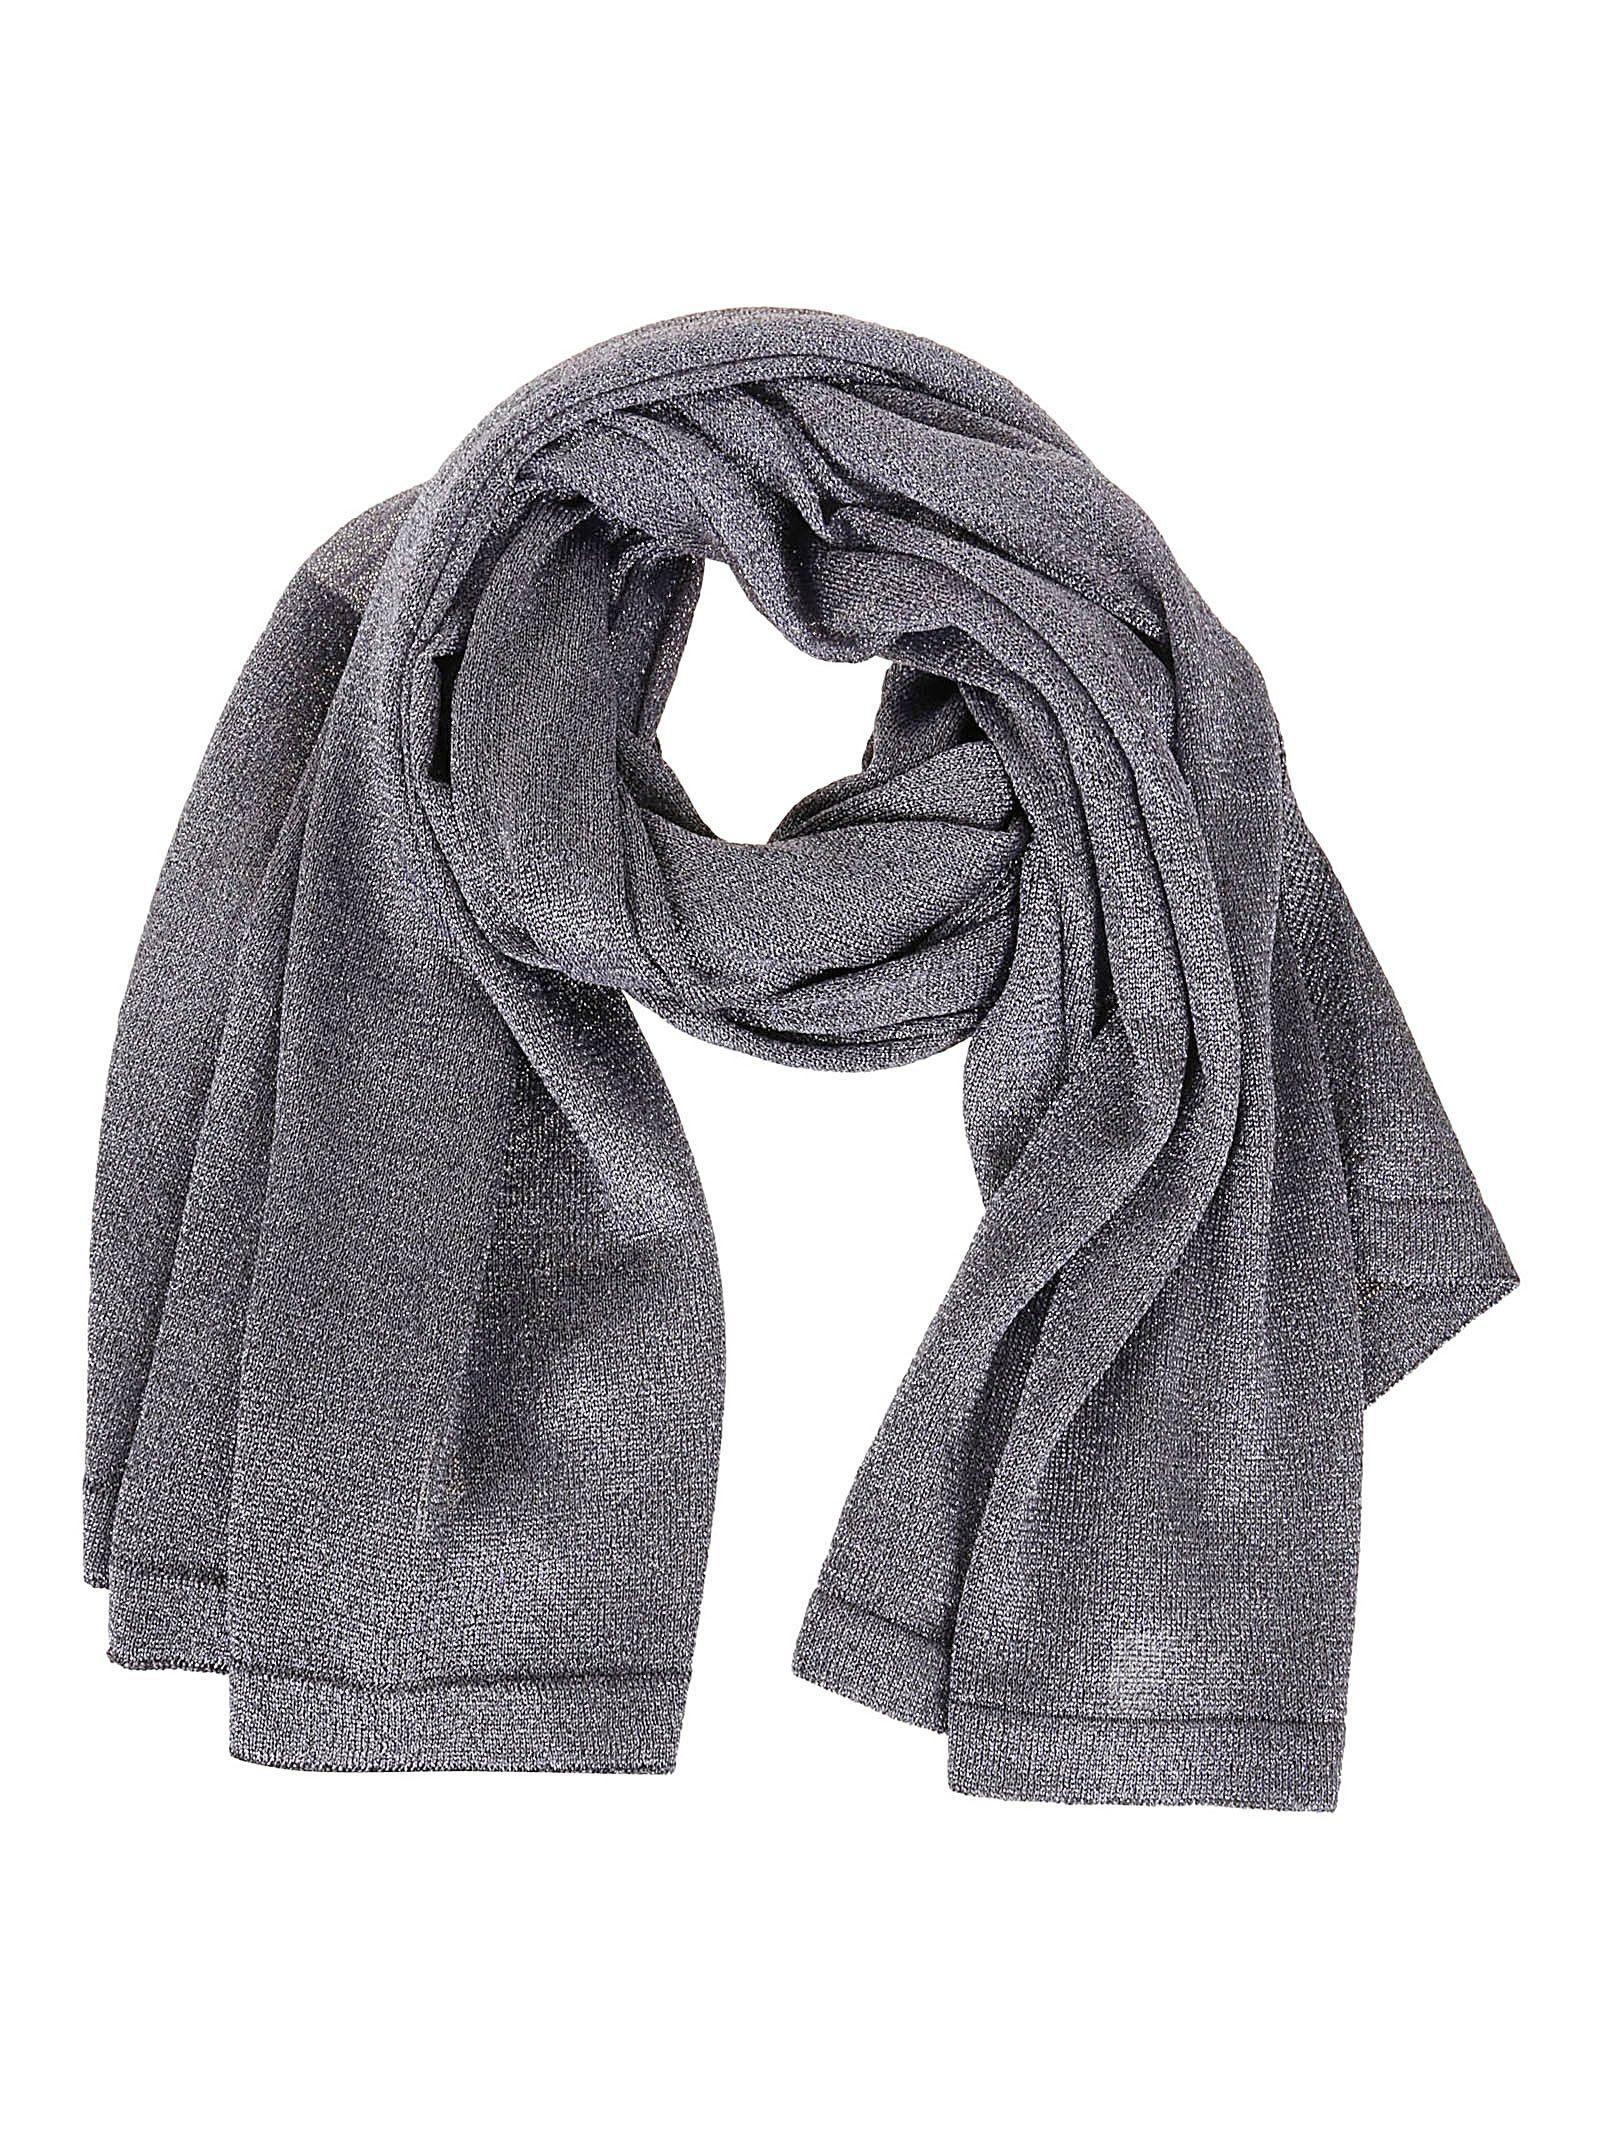 MISSONI WOMEN'S MDS00037BK0281L900G GREY VISCOSE SCARF